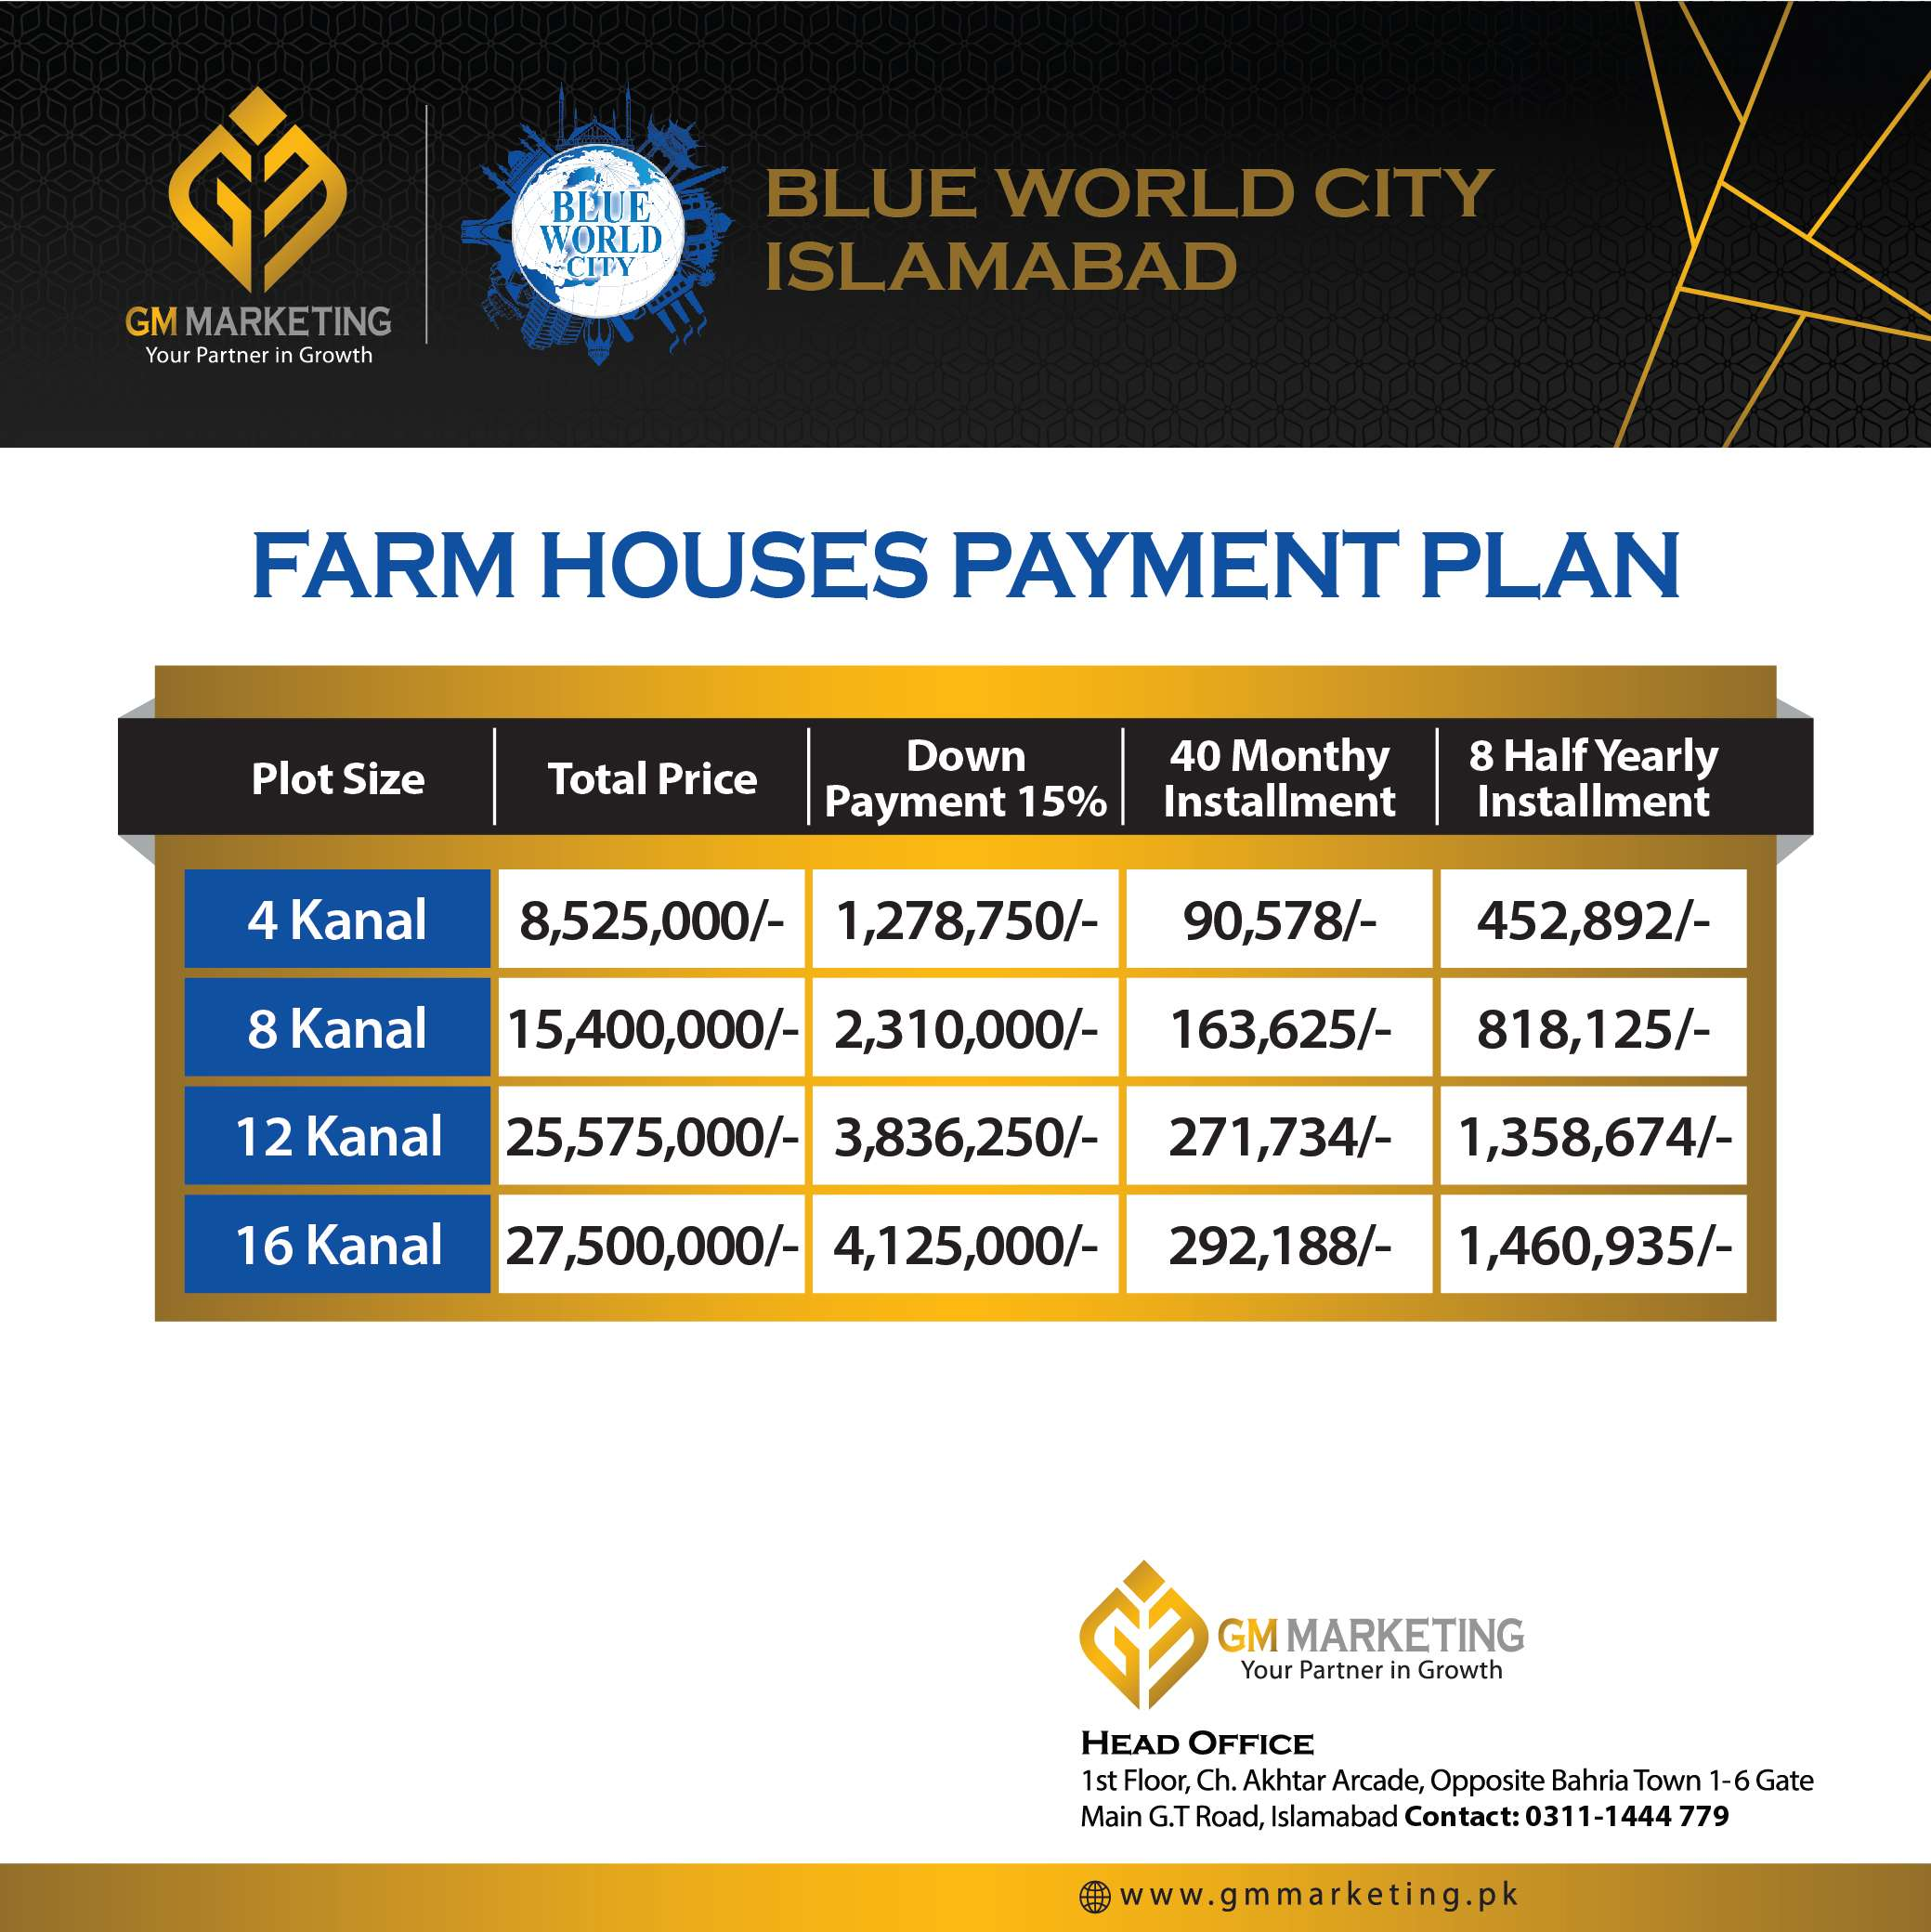 Blue World City Farm Houses Payment Plan_GM Marketing